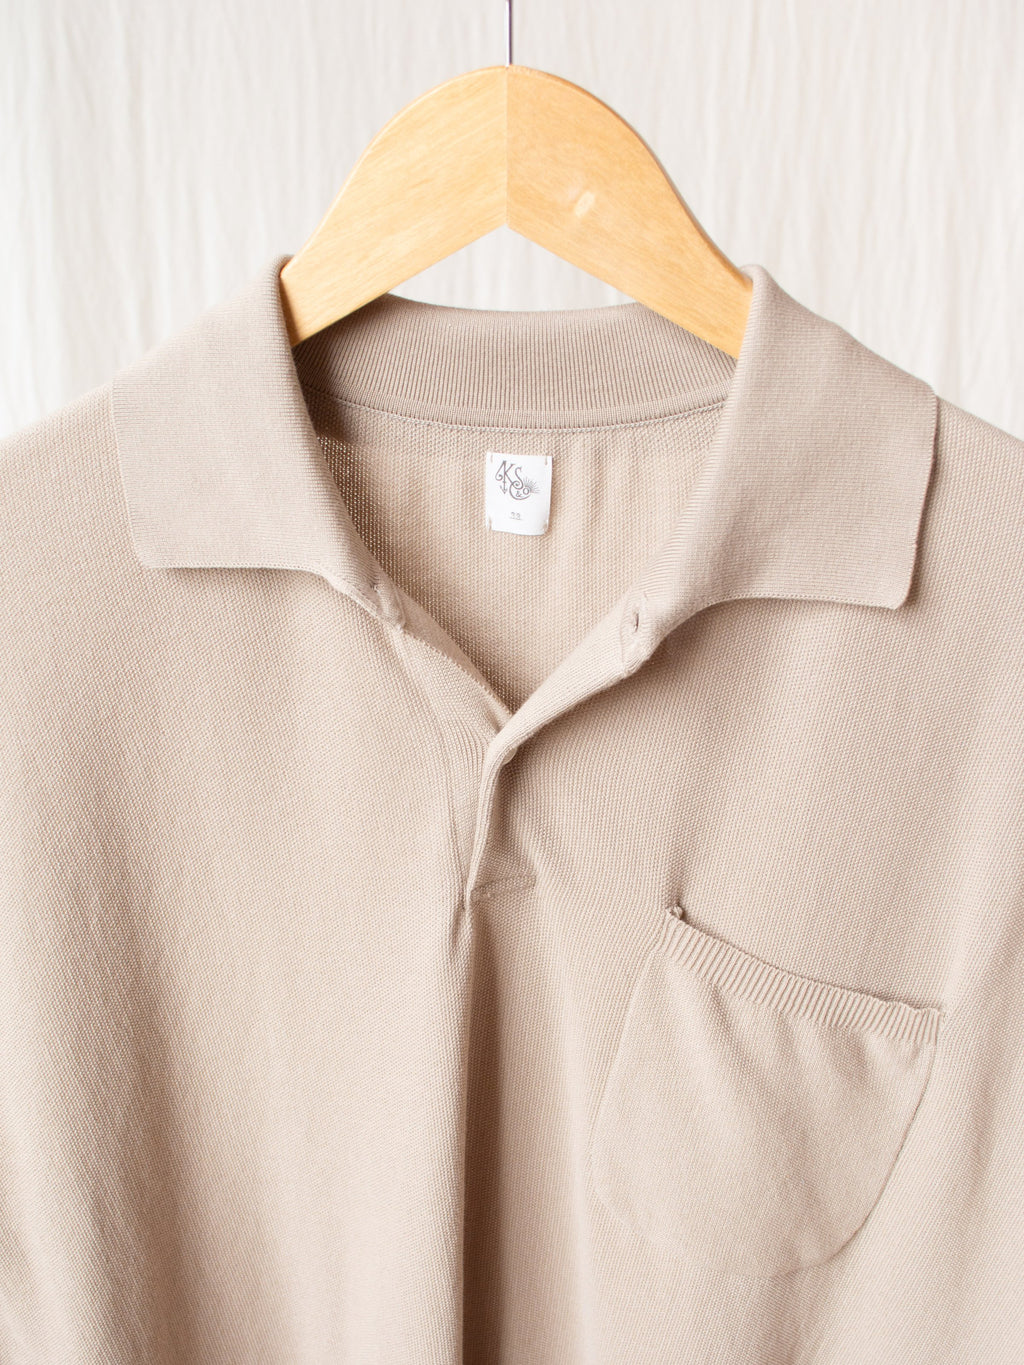 Namu Shop - Kaptain Sunshine Polo Collar Pique Knit - Sand